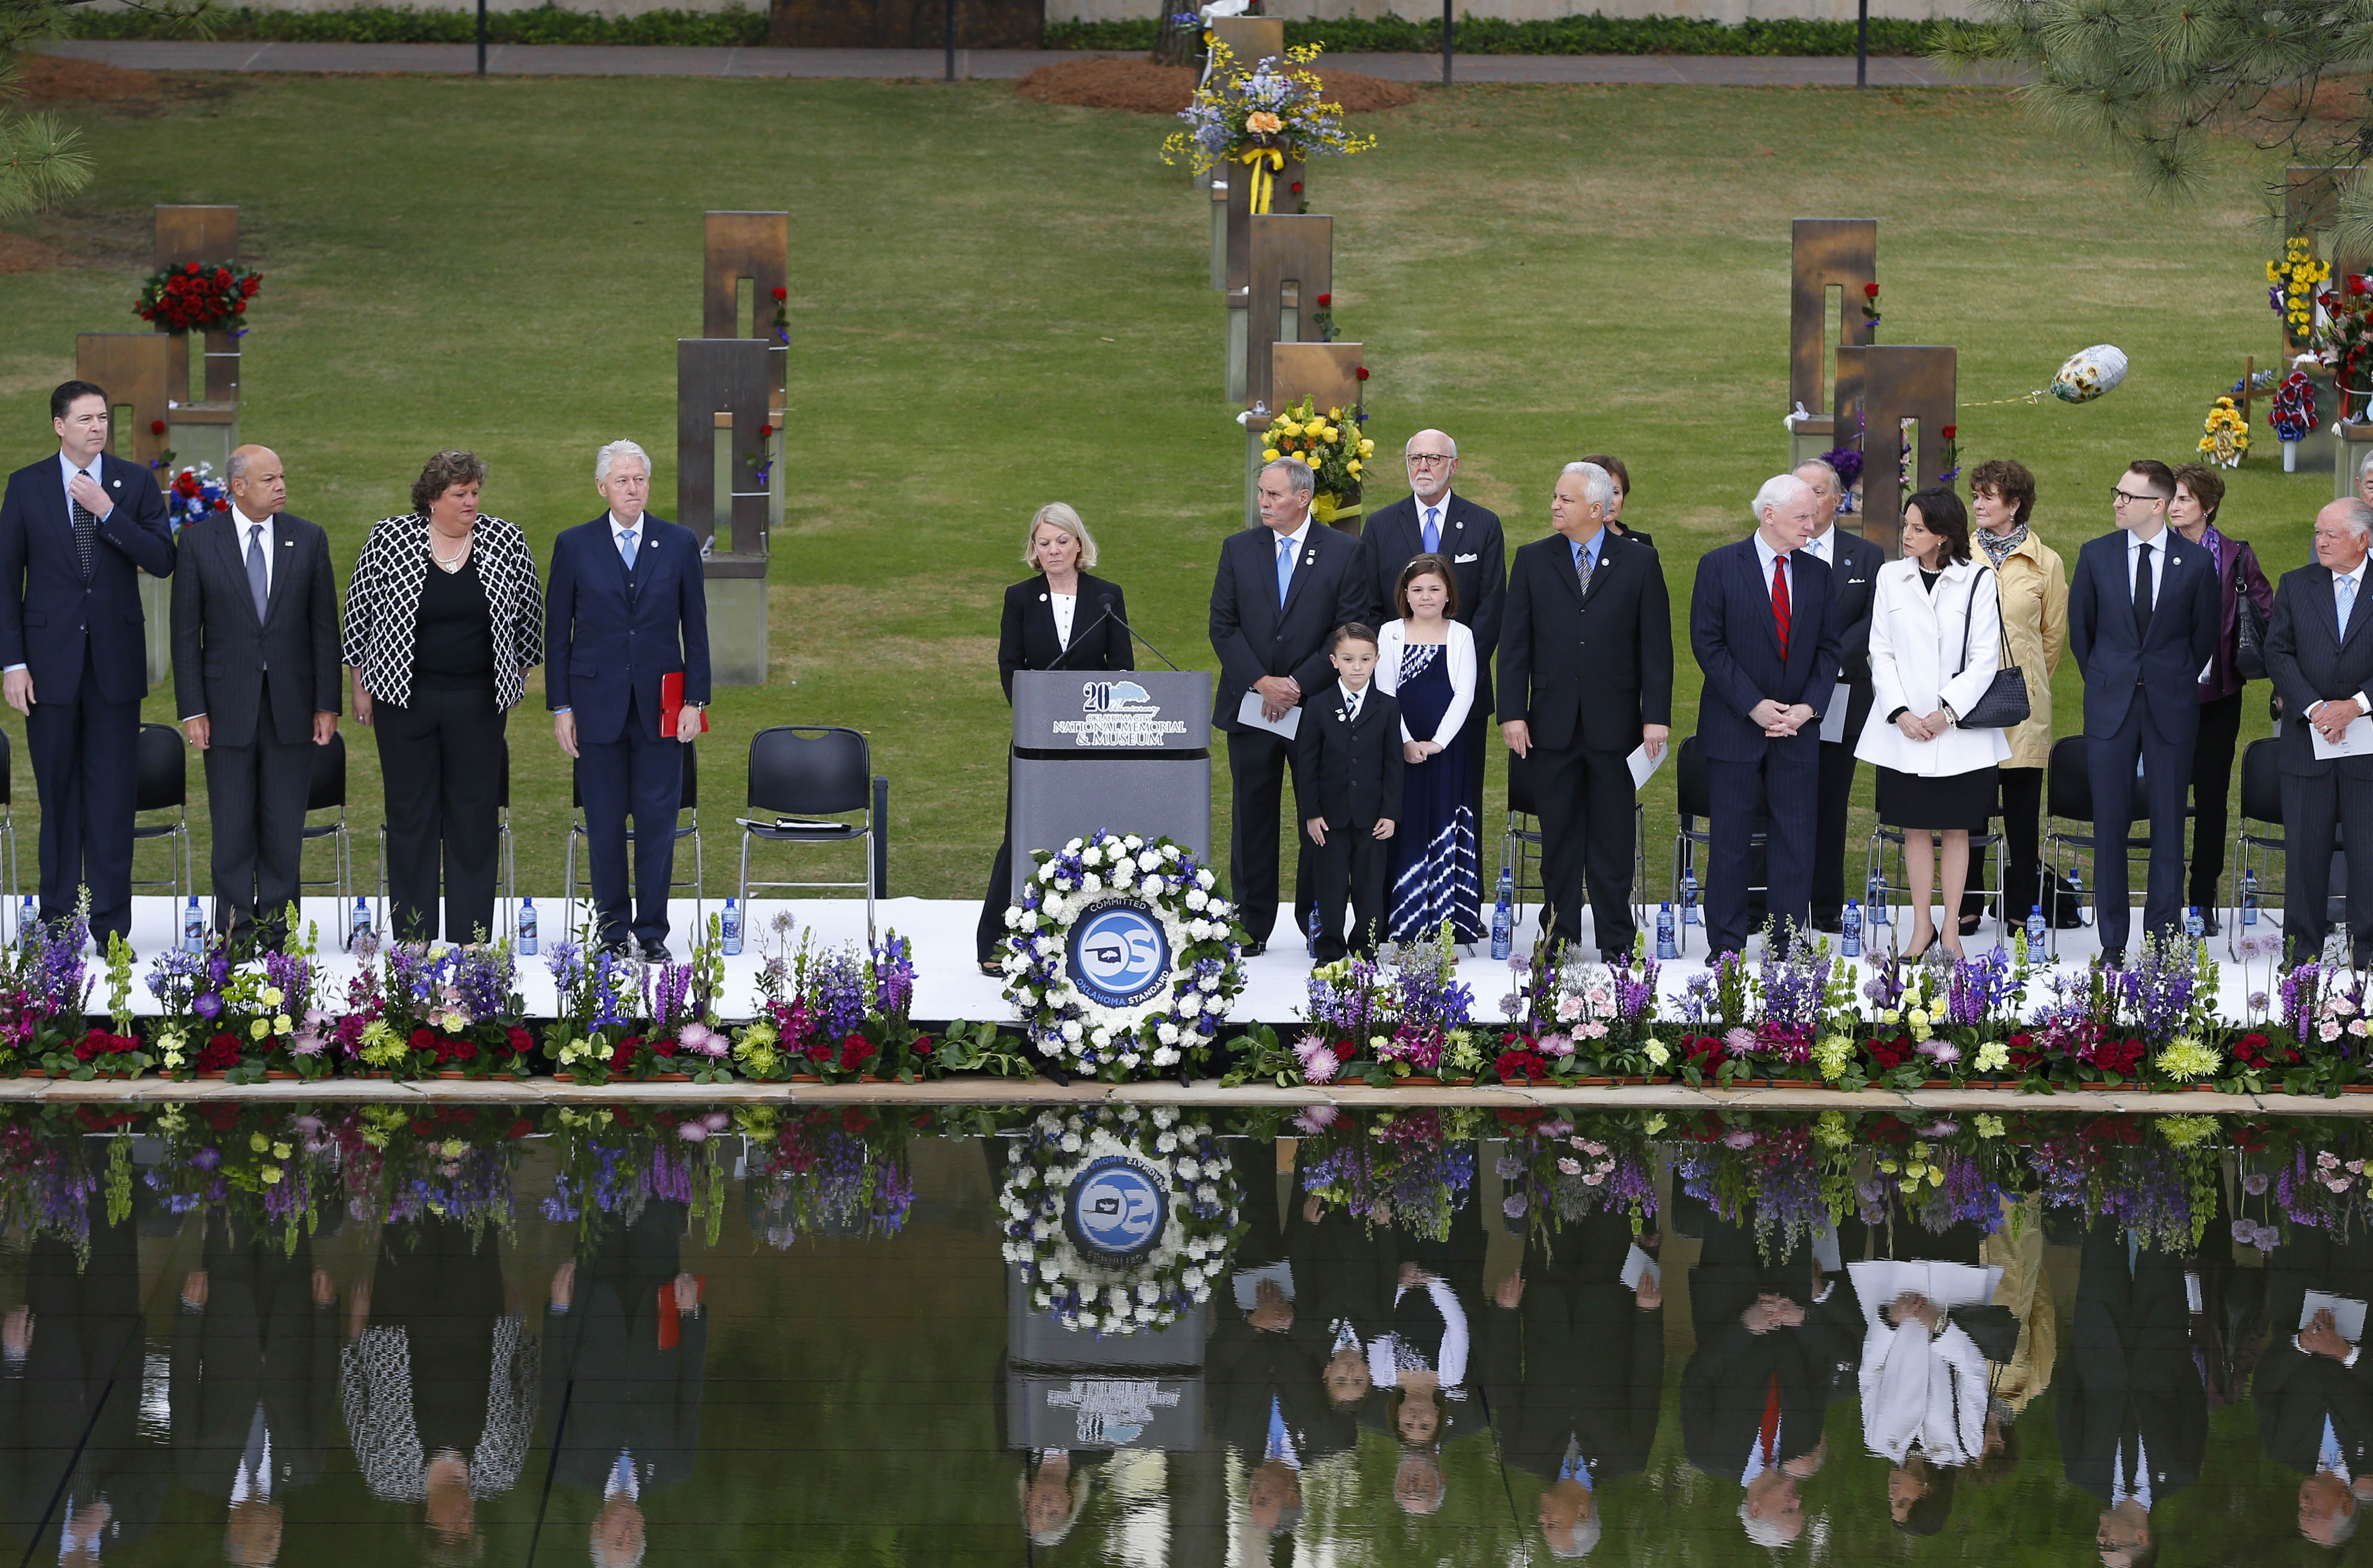 oklahoma city bombing 20th anniversary what happened on best